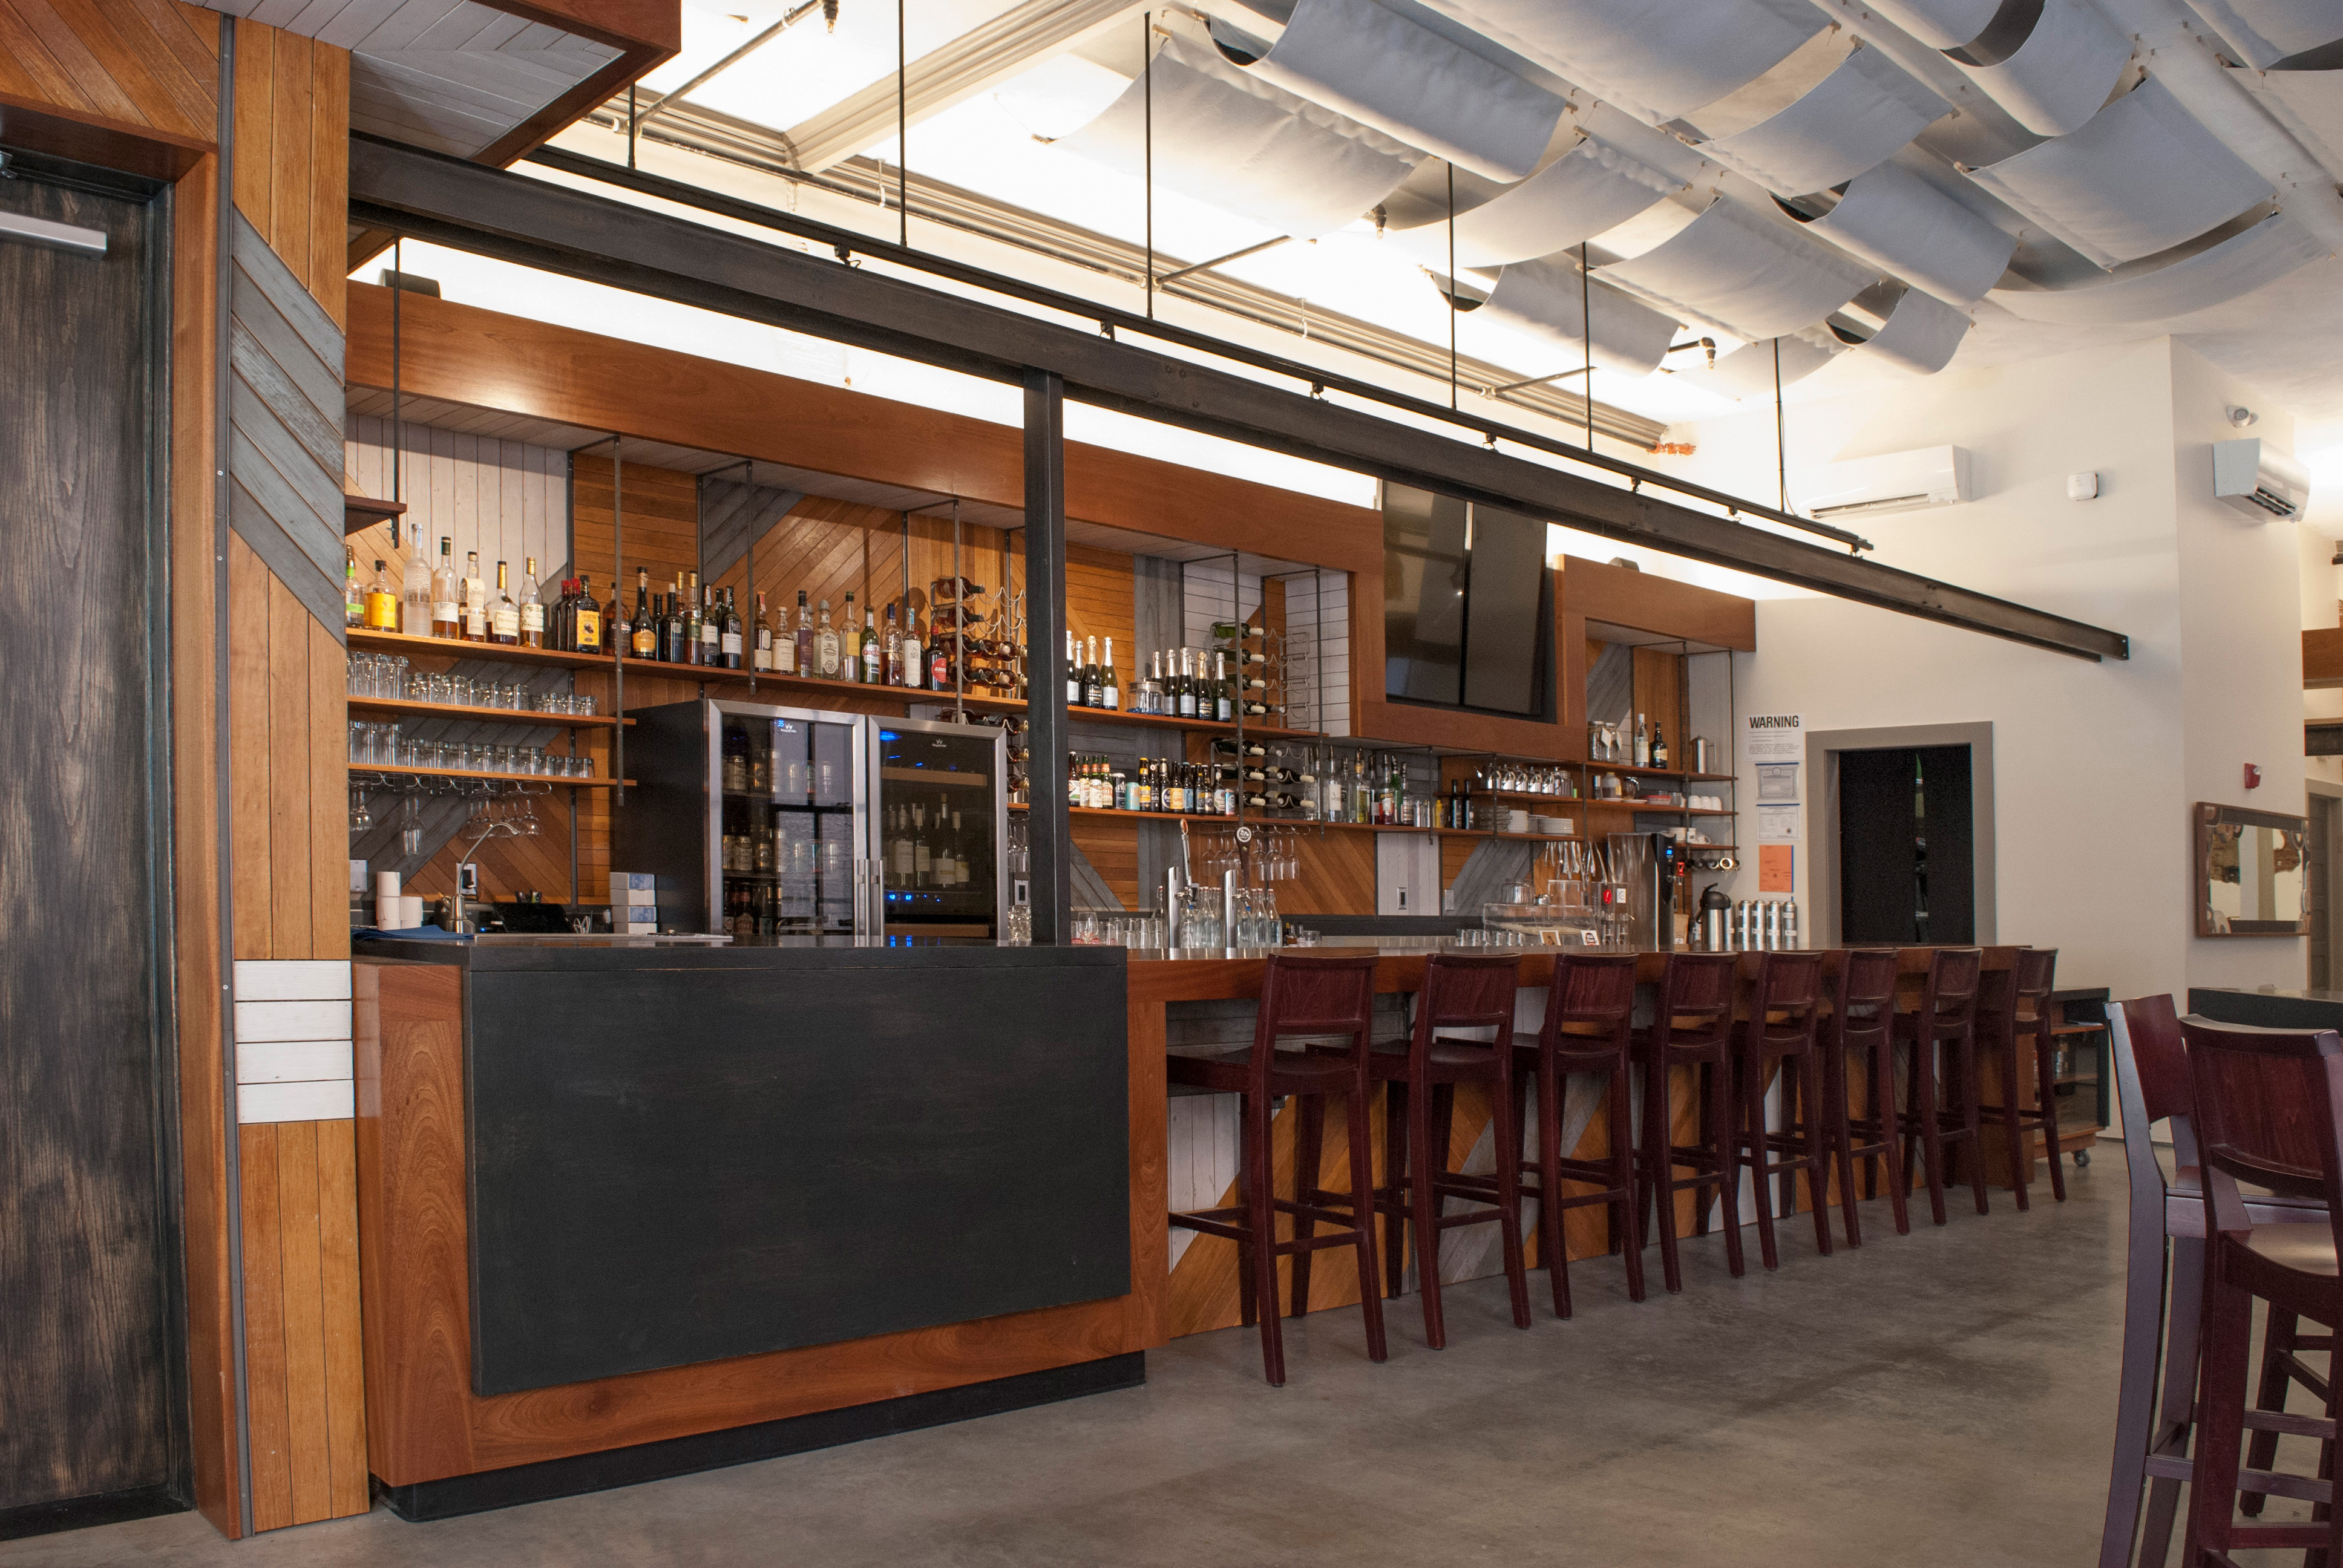 Photos from the watershed usa restaurant furniture and